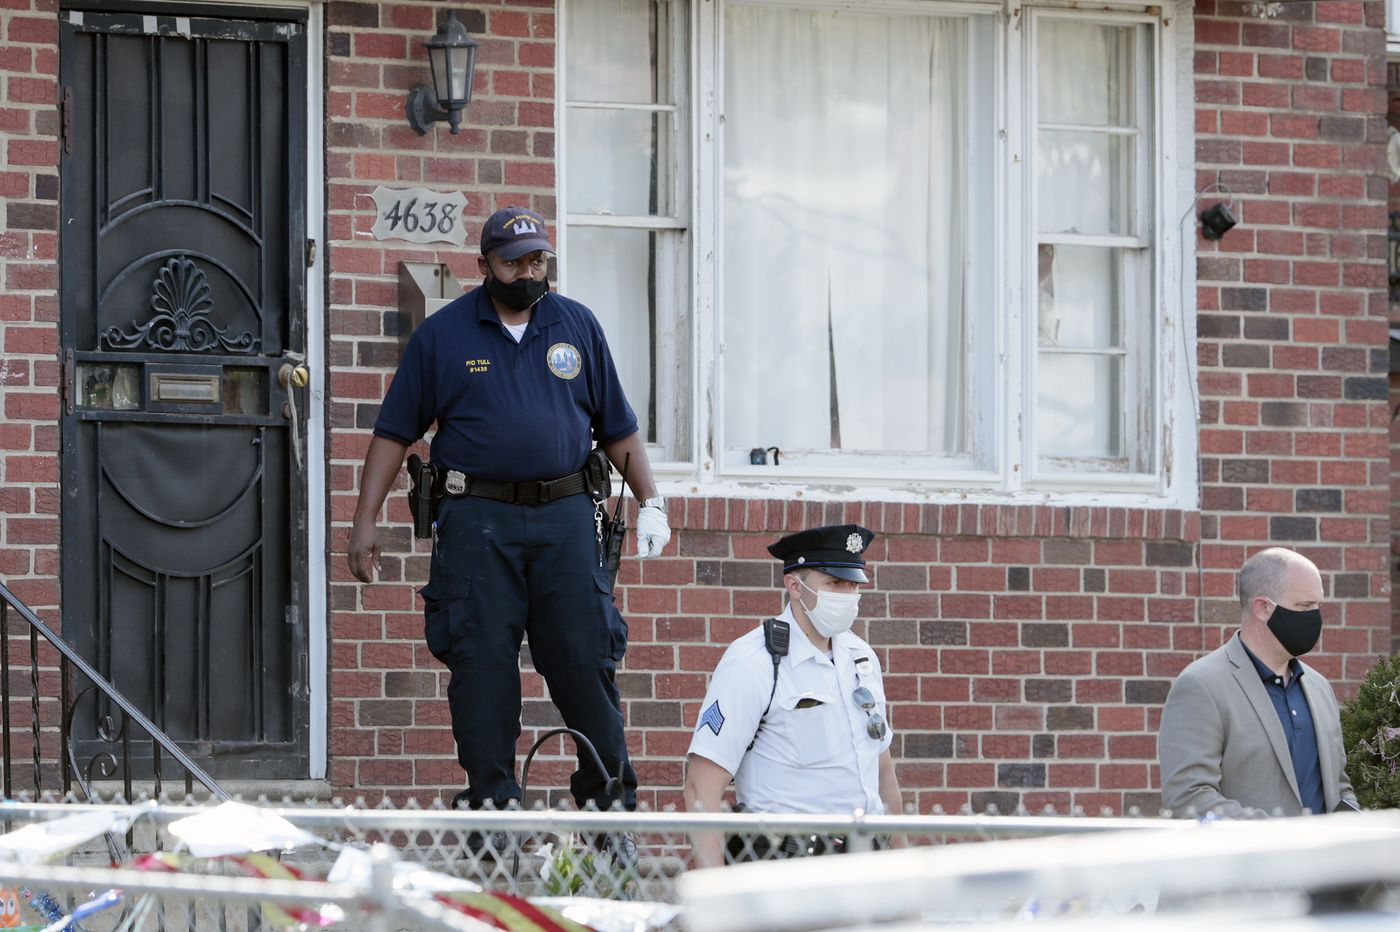 6-year-old boy among 5 fatalities in 5 shootings in Philly in 1 afternoon; 11-, 15-year-old among injured